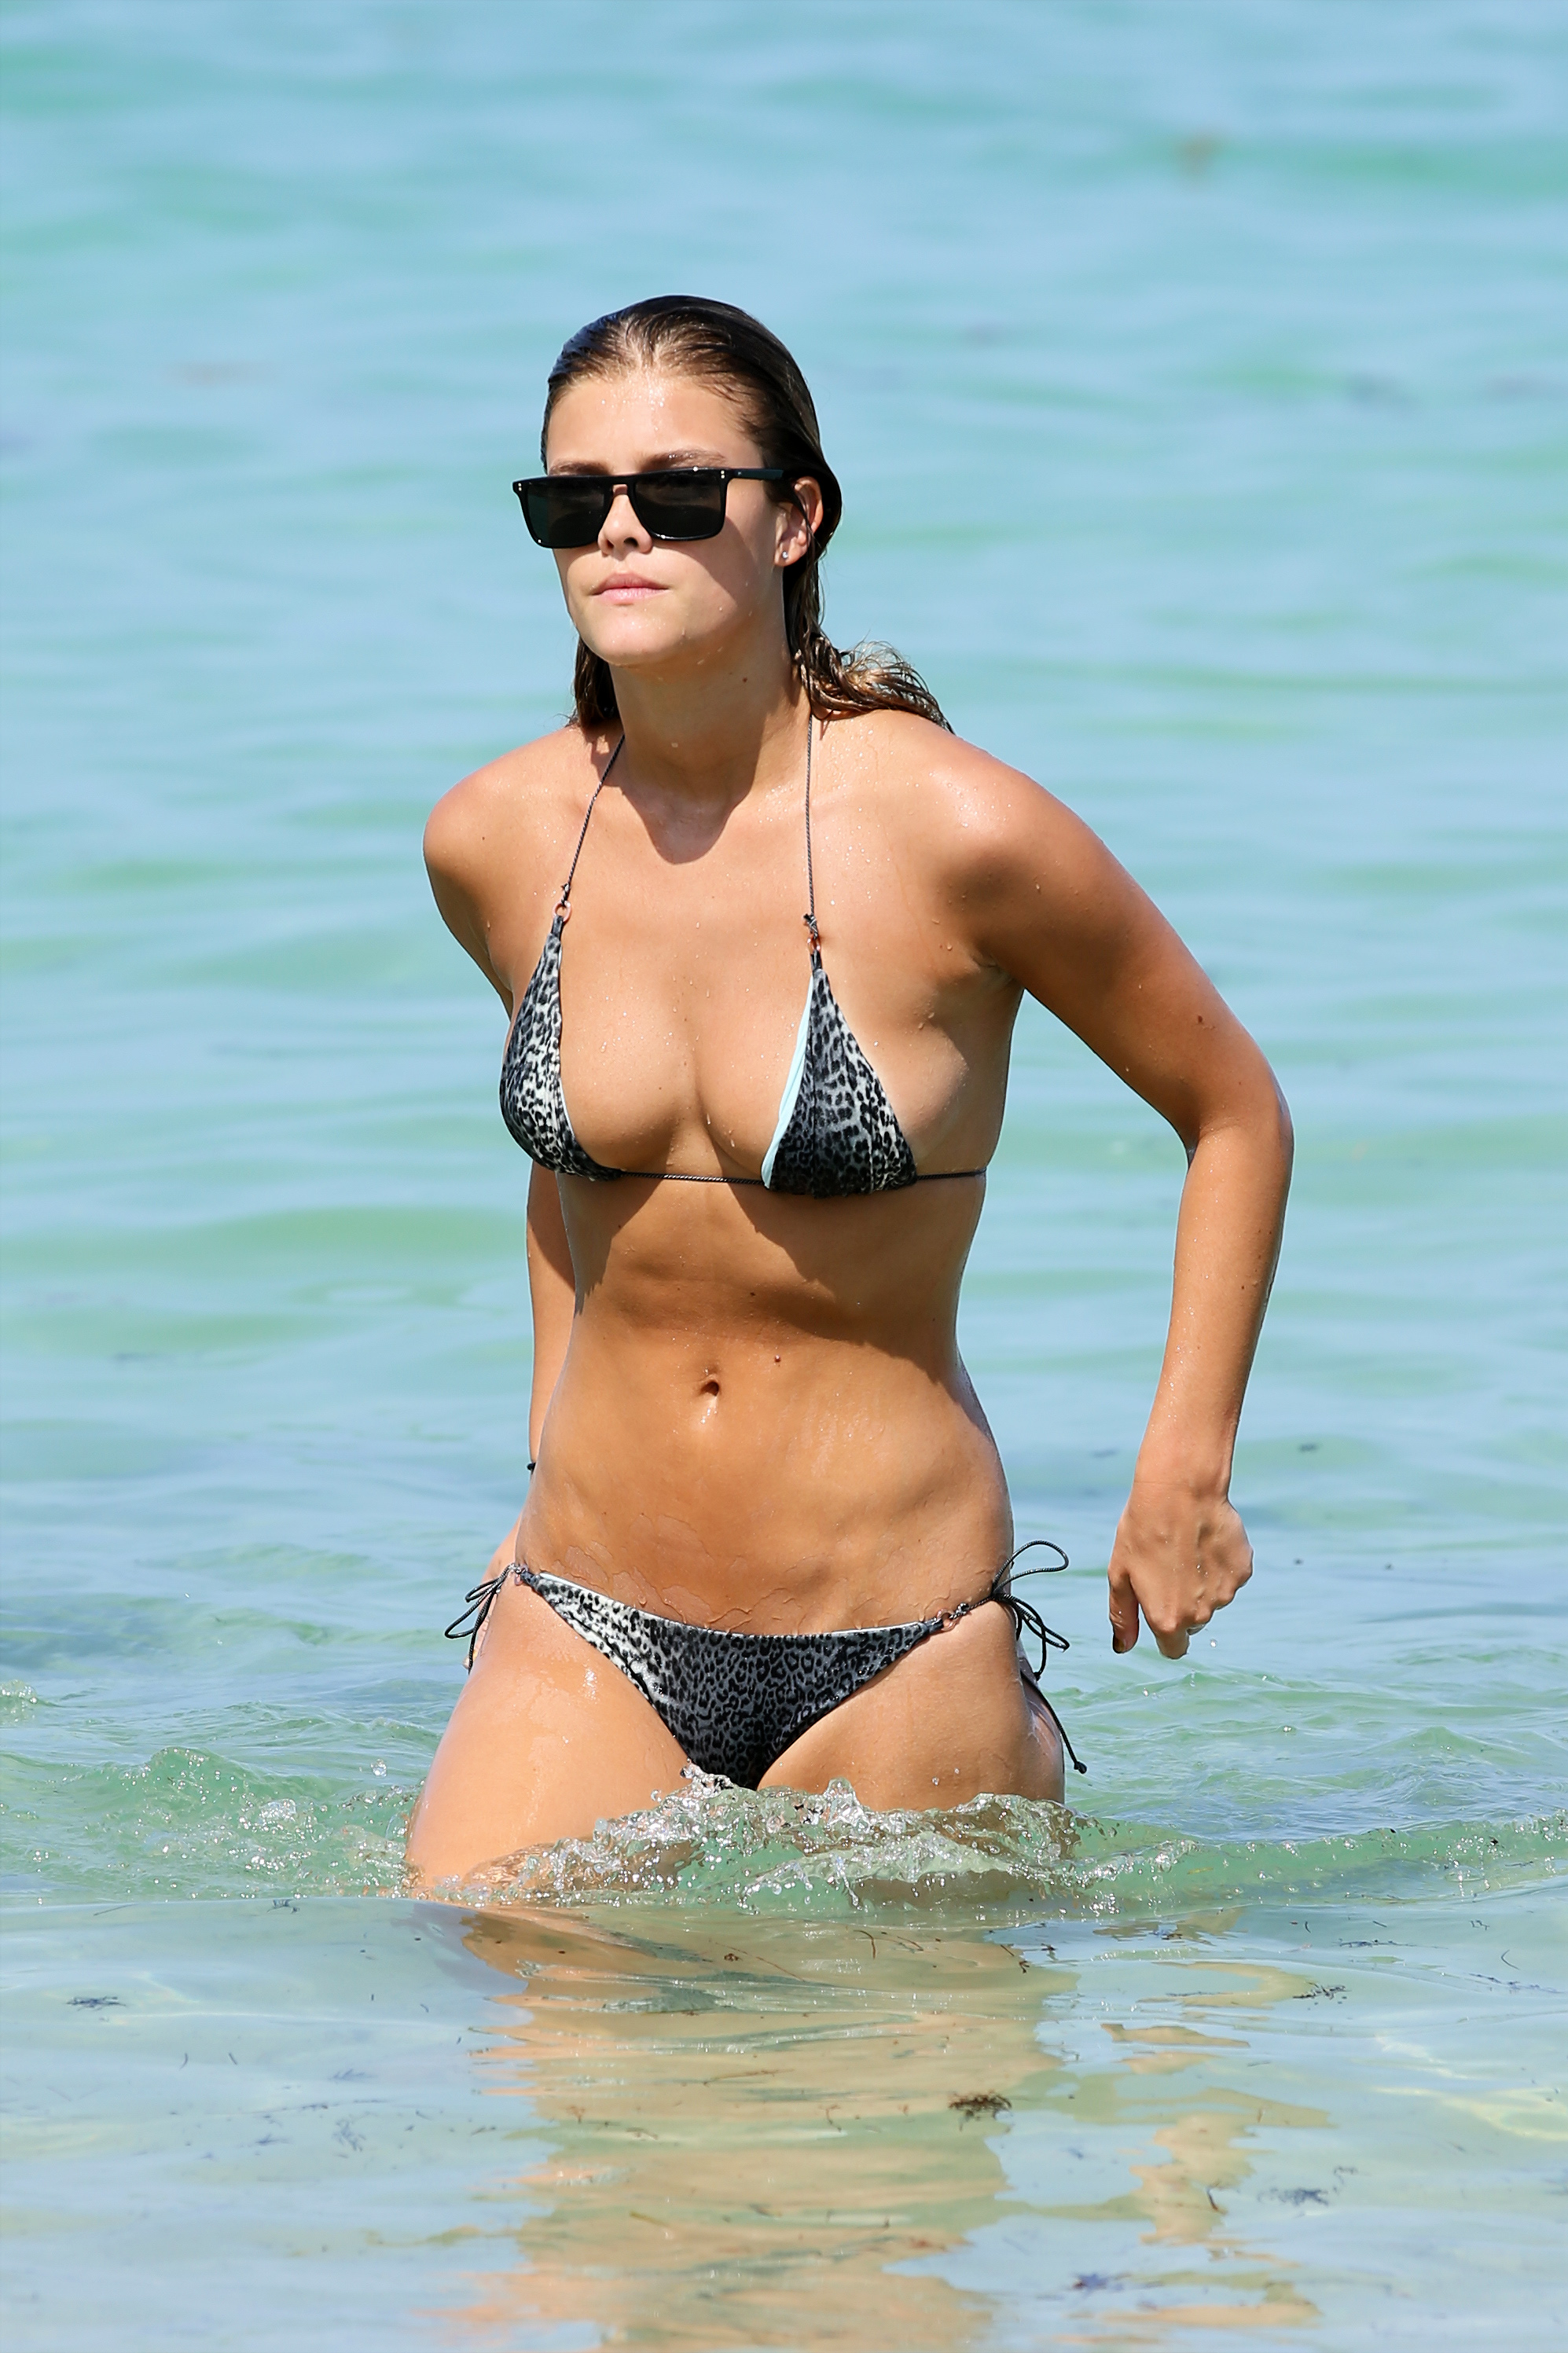 nina-agdal-at-the-beach-miami-july-19-2014-04